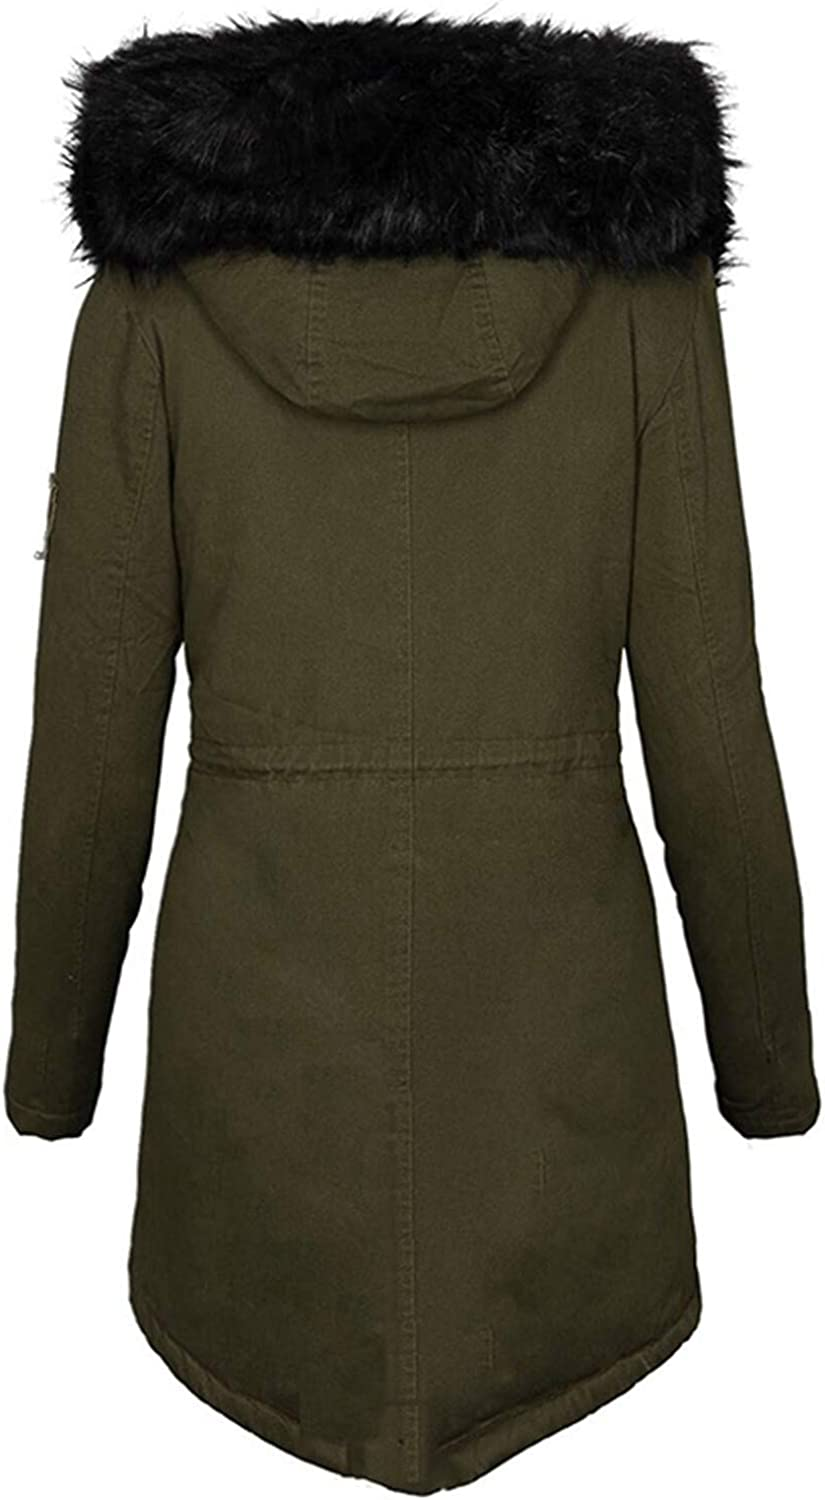 HGWXX7 Jacket for Women Zip Up Faux Fur Hood Parka Jacket Casual Plus Size Waist Drawstring Winter Coats with Pocket Army Green